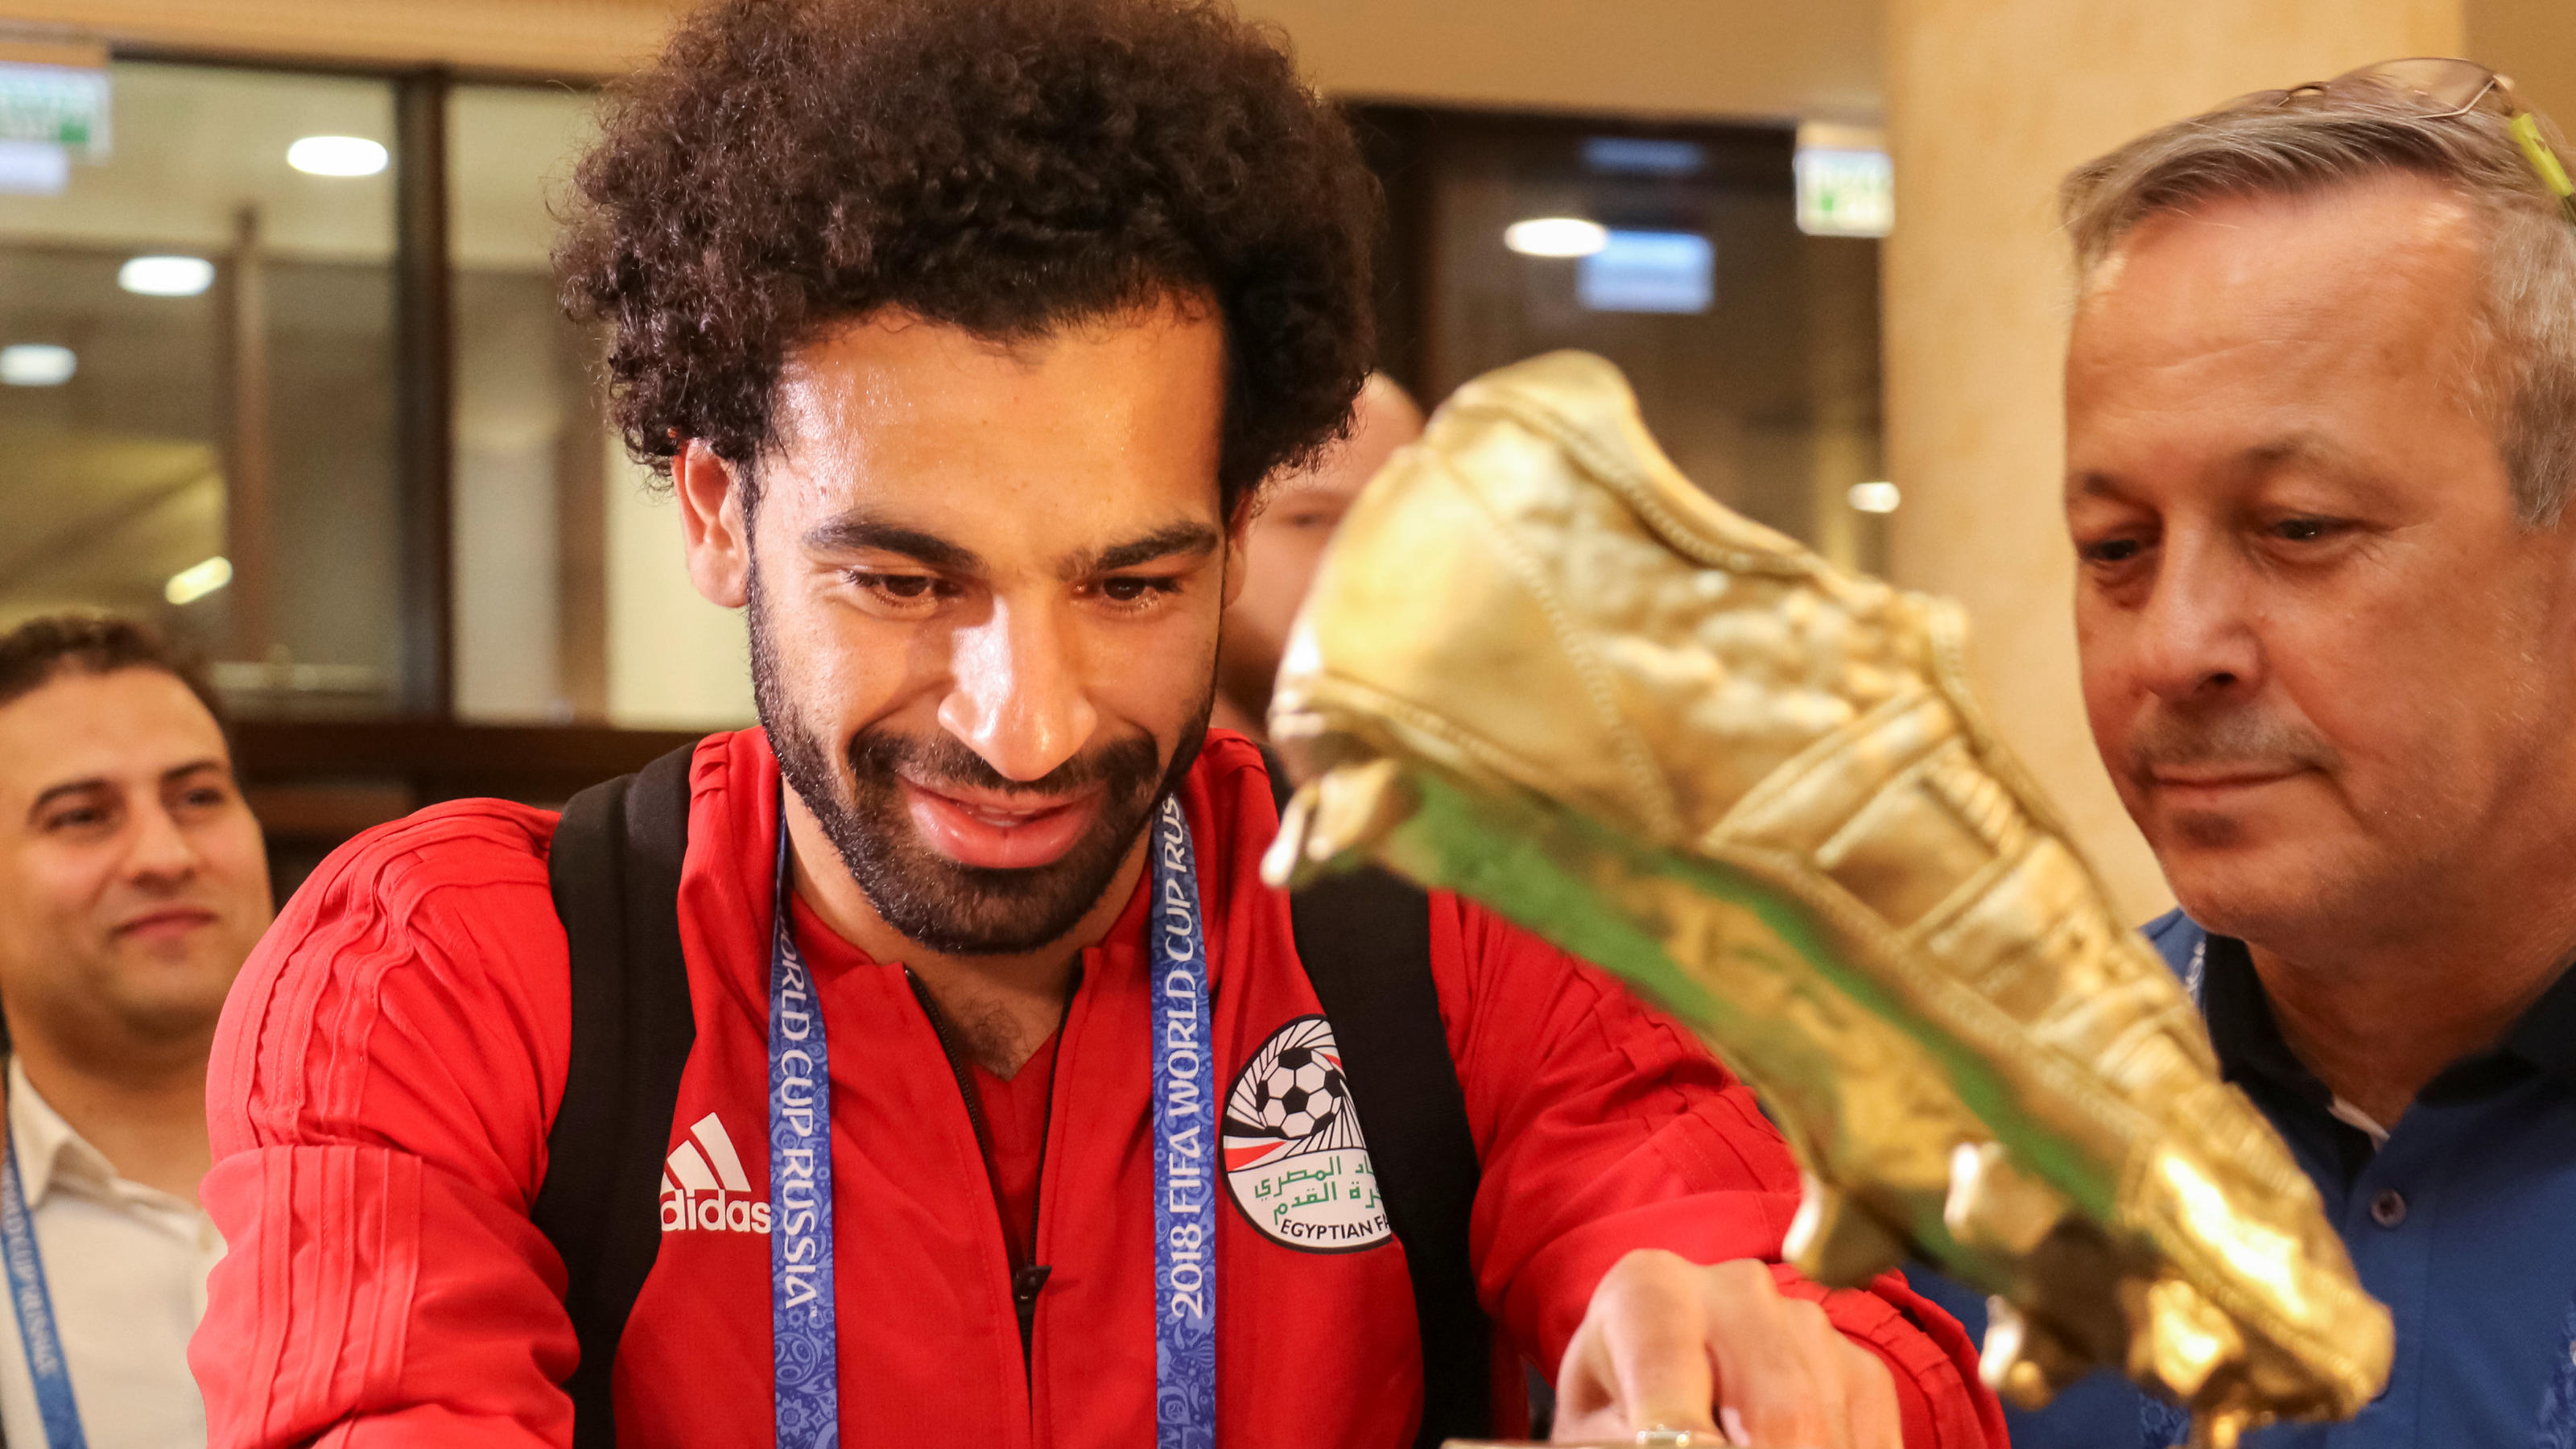 Player of the Egyptian national soccer team Mohamed Salah receives a cake, weighing 100 kilograms and decorated with a golden football boot, as a present on his birthday during a ceremony in the Chechen capital Grozny, Russia June 16, 2018. REUTERS/A